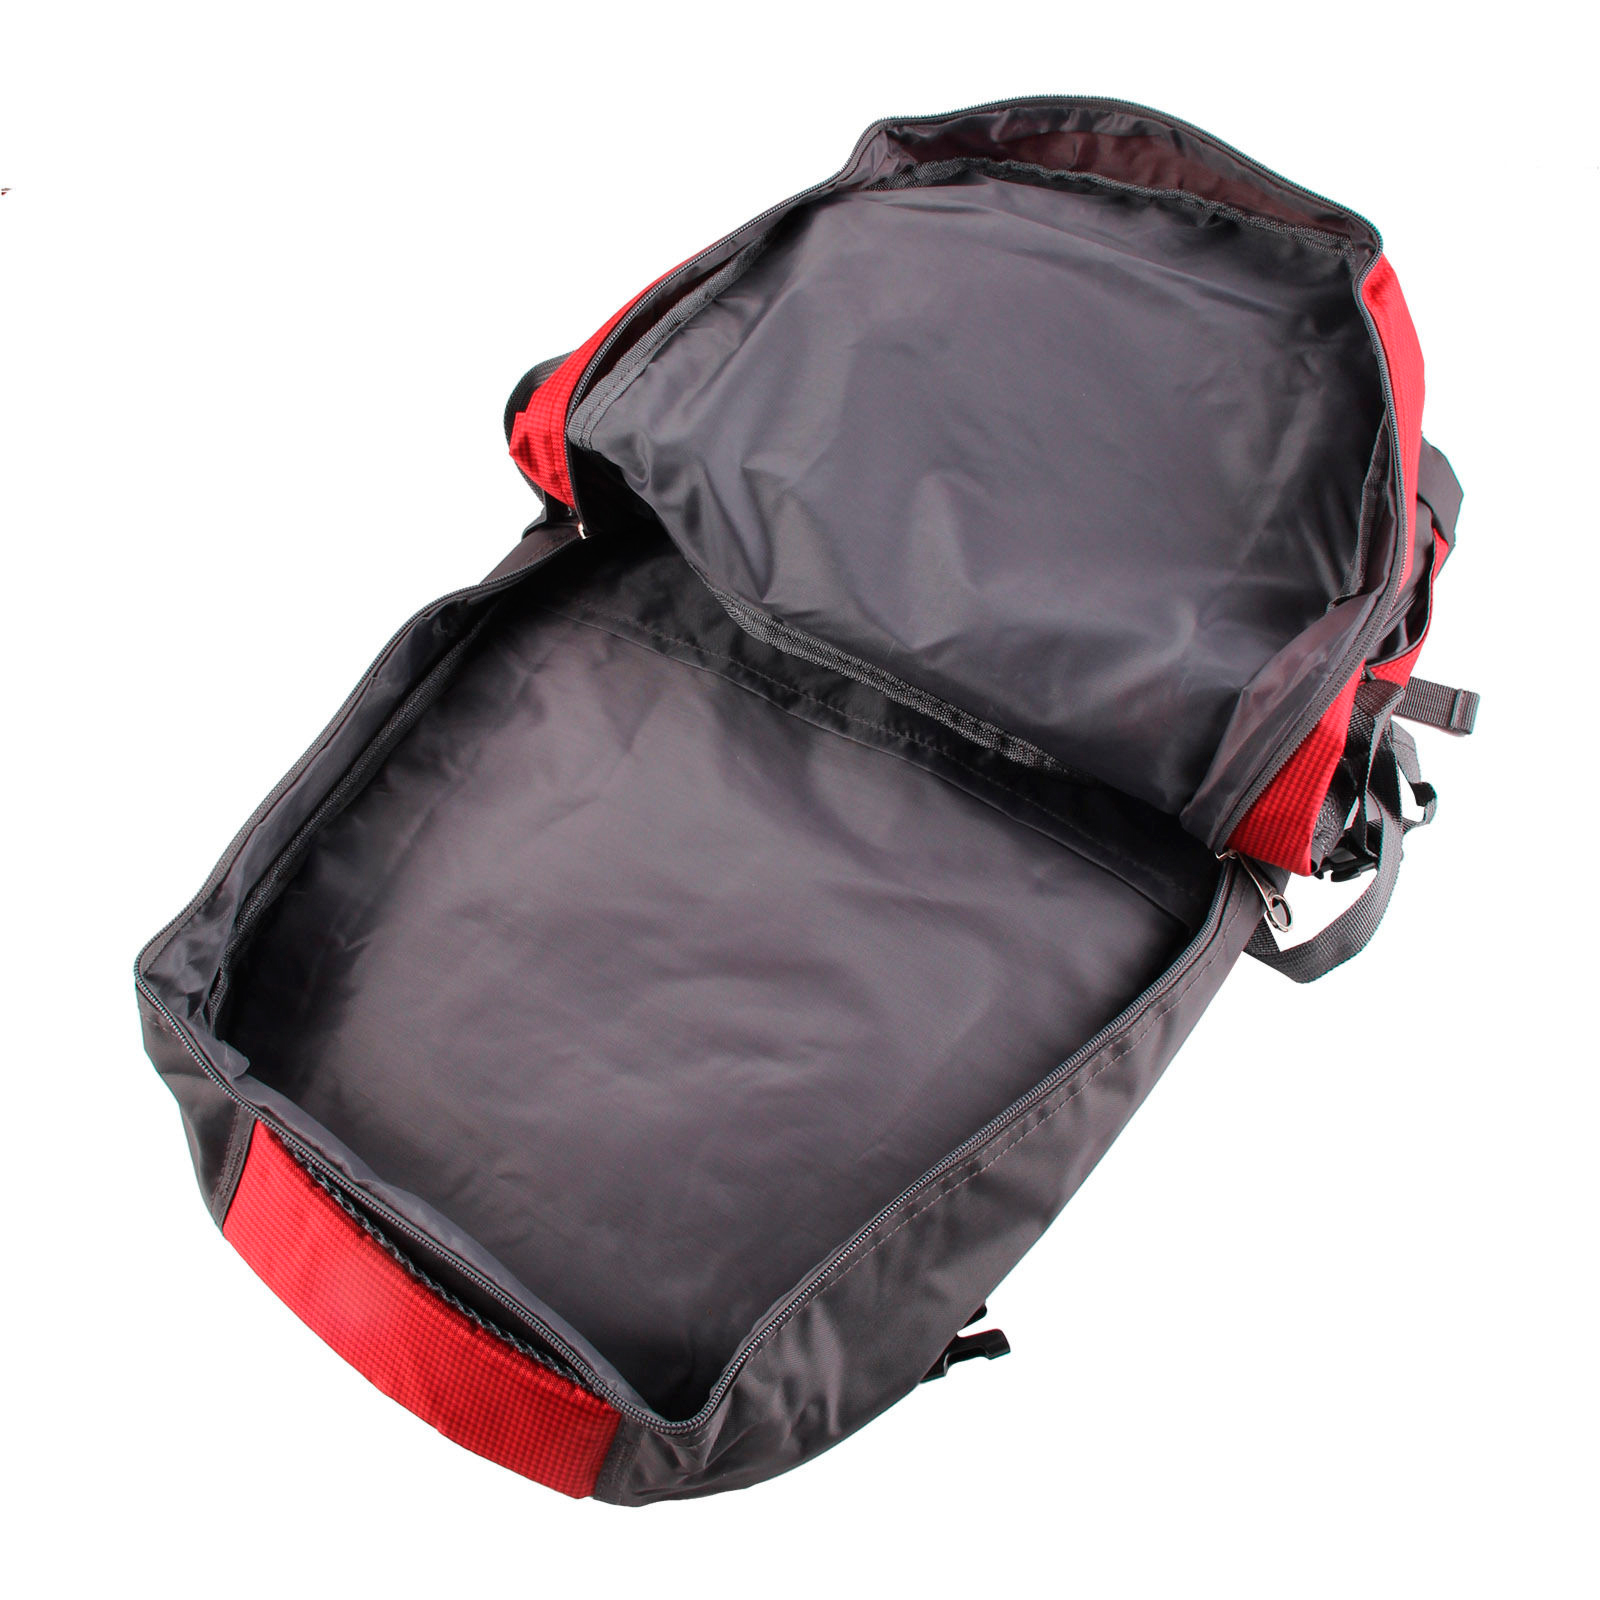 60l sac a dos randonn camping trekking backpack voyage sport sac dos nylon ebay. Black Bedroom Furniture Sets. Home Design Ideas